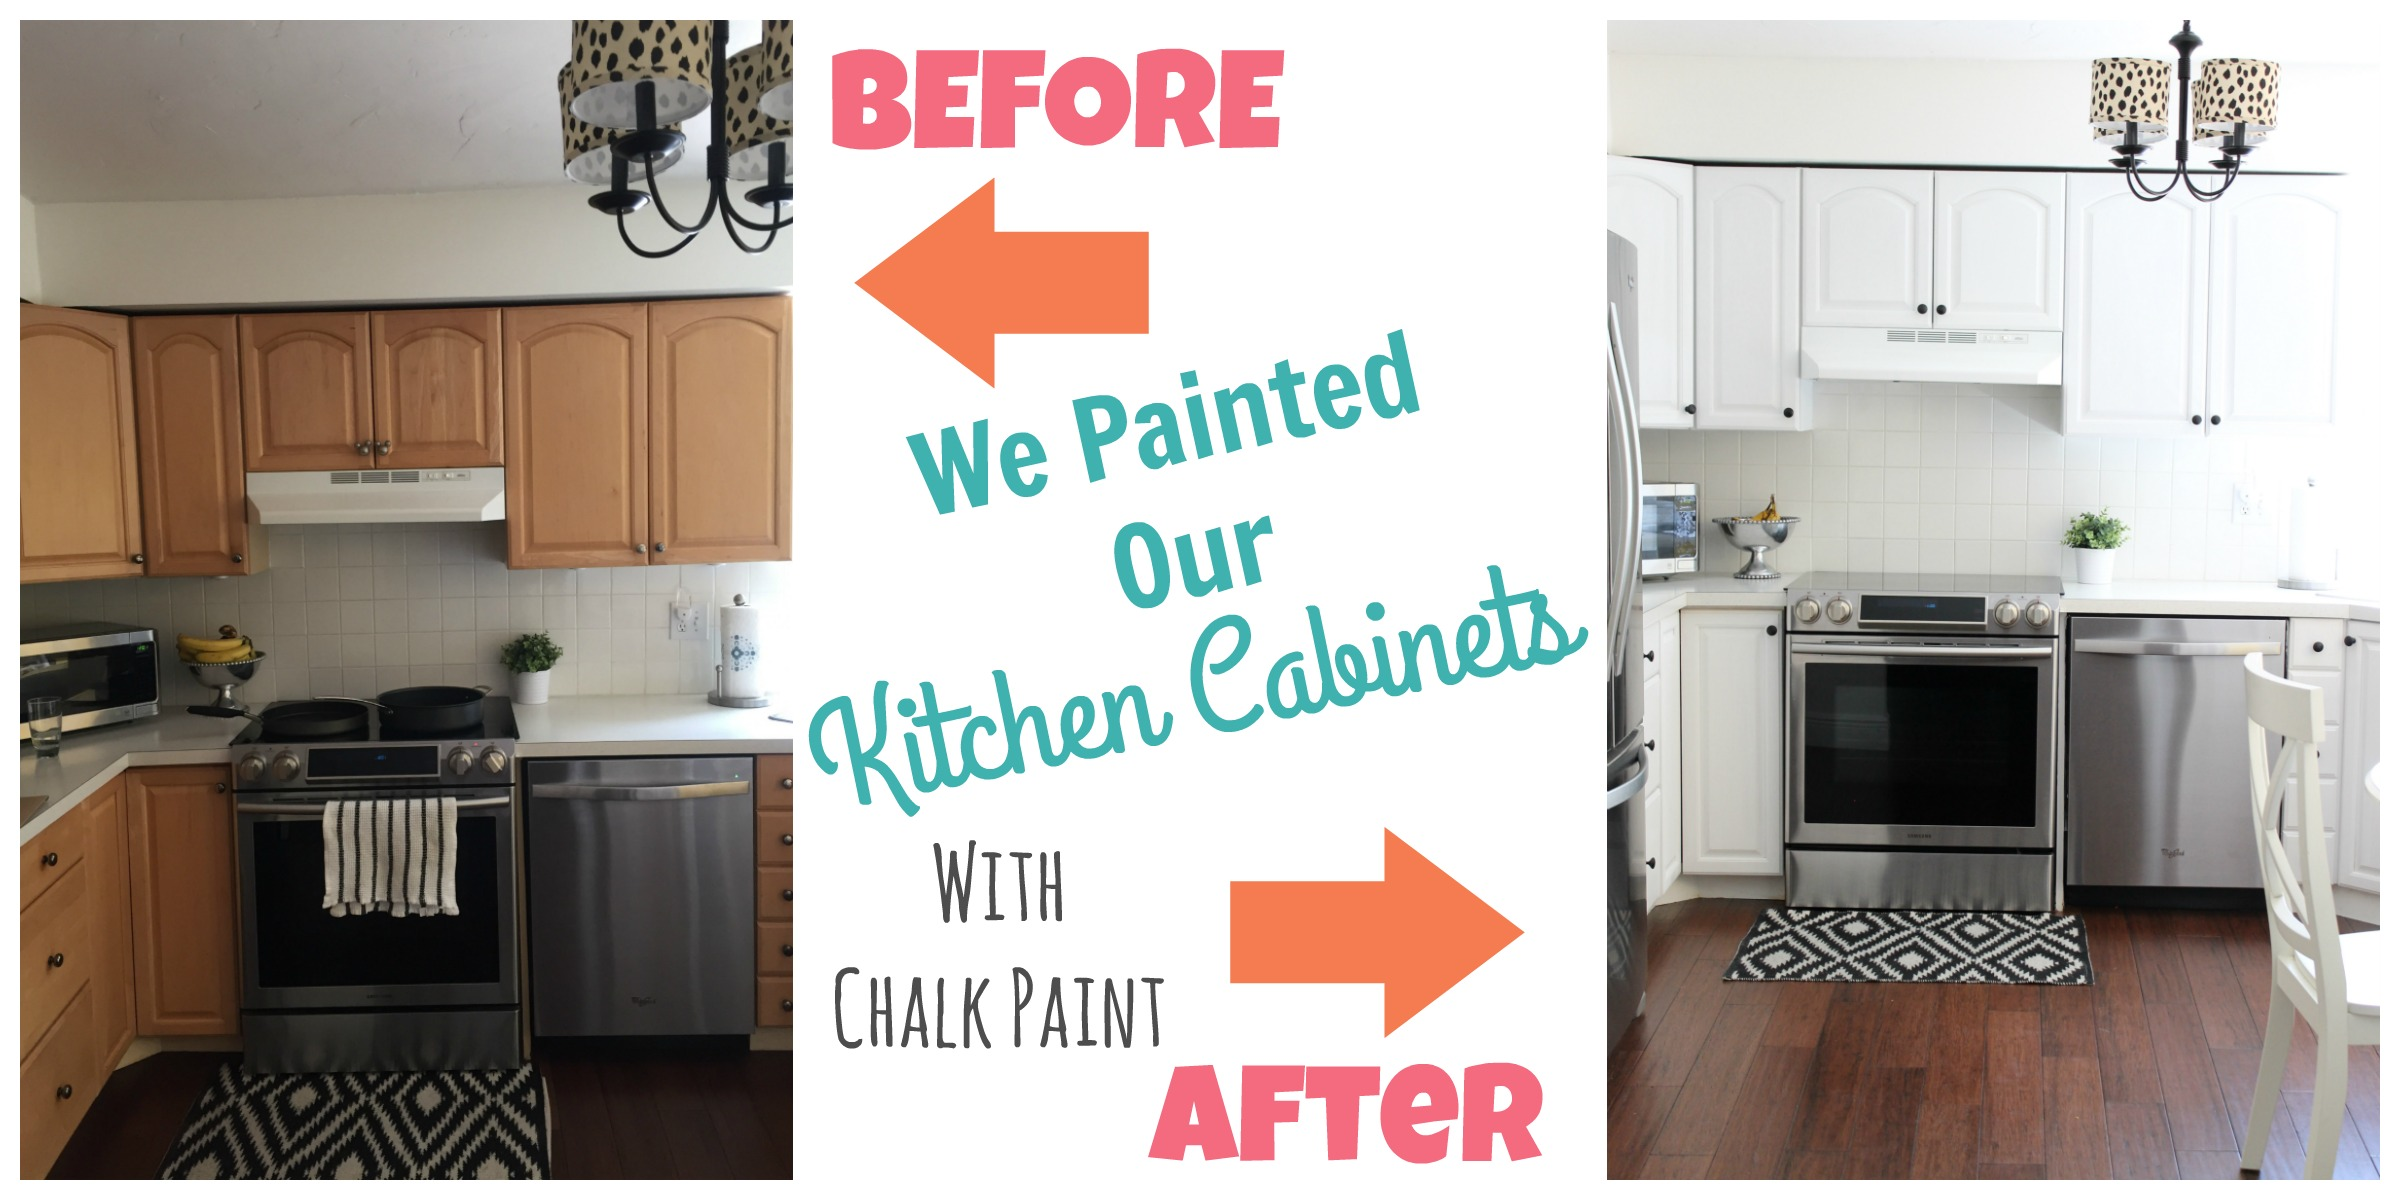 how to paint kitchen cabinets happy home fairy i am just so in love with our kitchen now every time we walk in there we can t help but make happy exclamations about how fresh the cabinets look